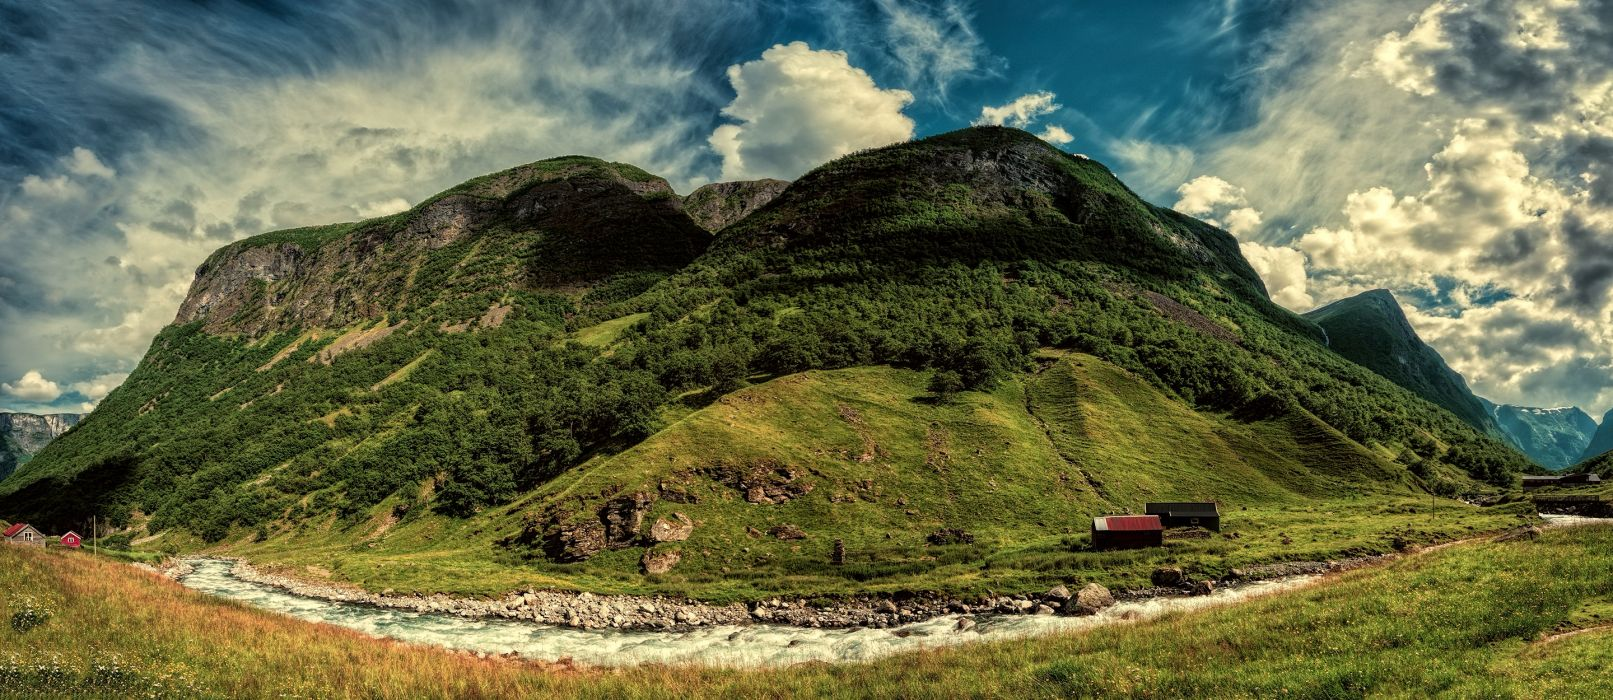 Norway Mountains Rivers Sky Aurland Sogn wallpaper